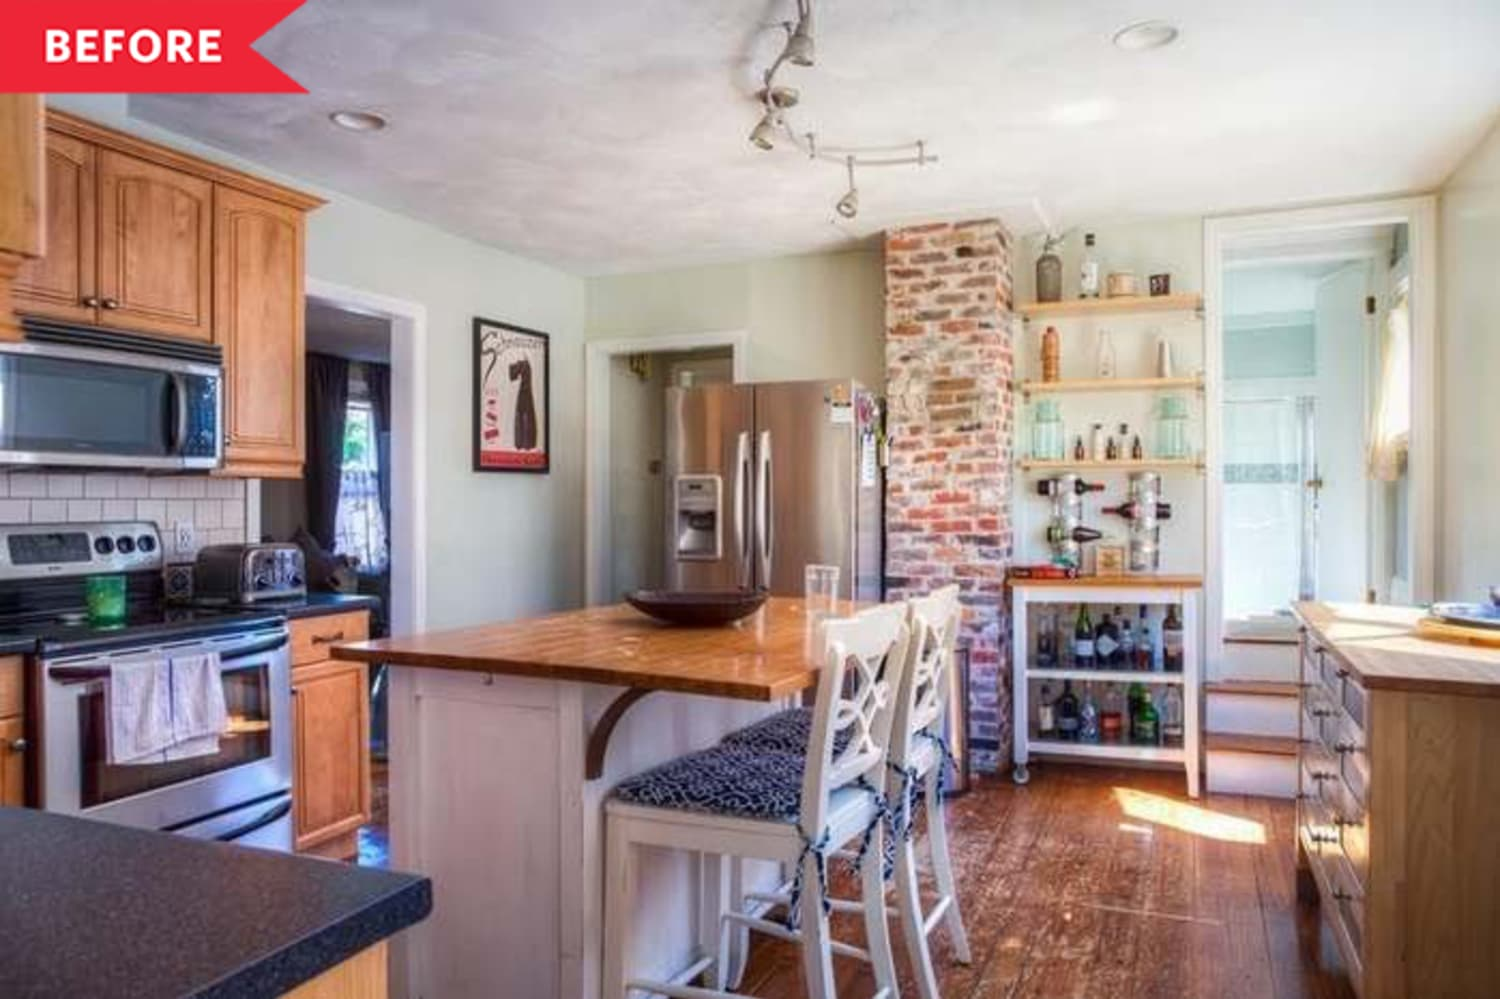 Before and After: After Recovering from a Sewage Leak, This Kitchen's Better Than Ever